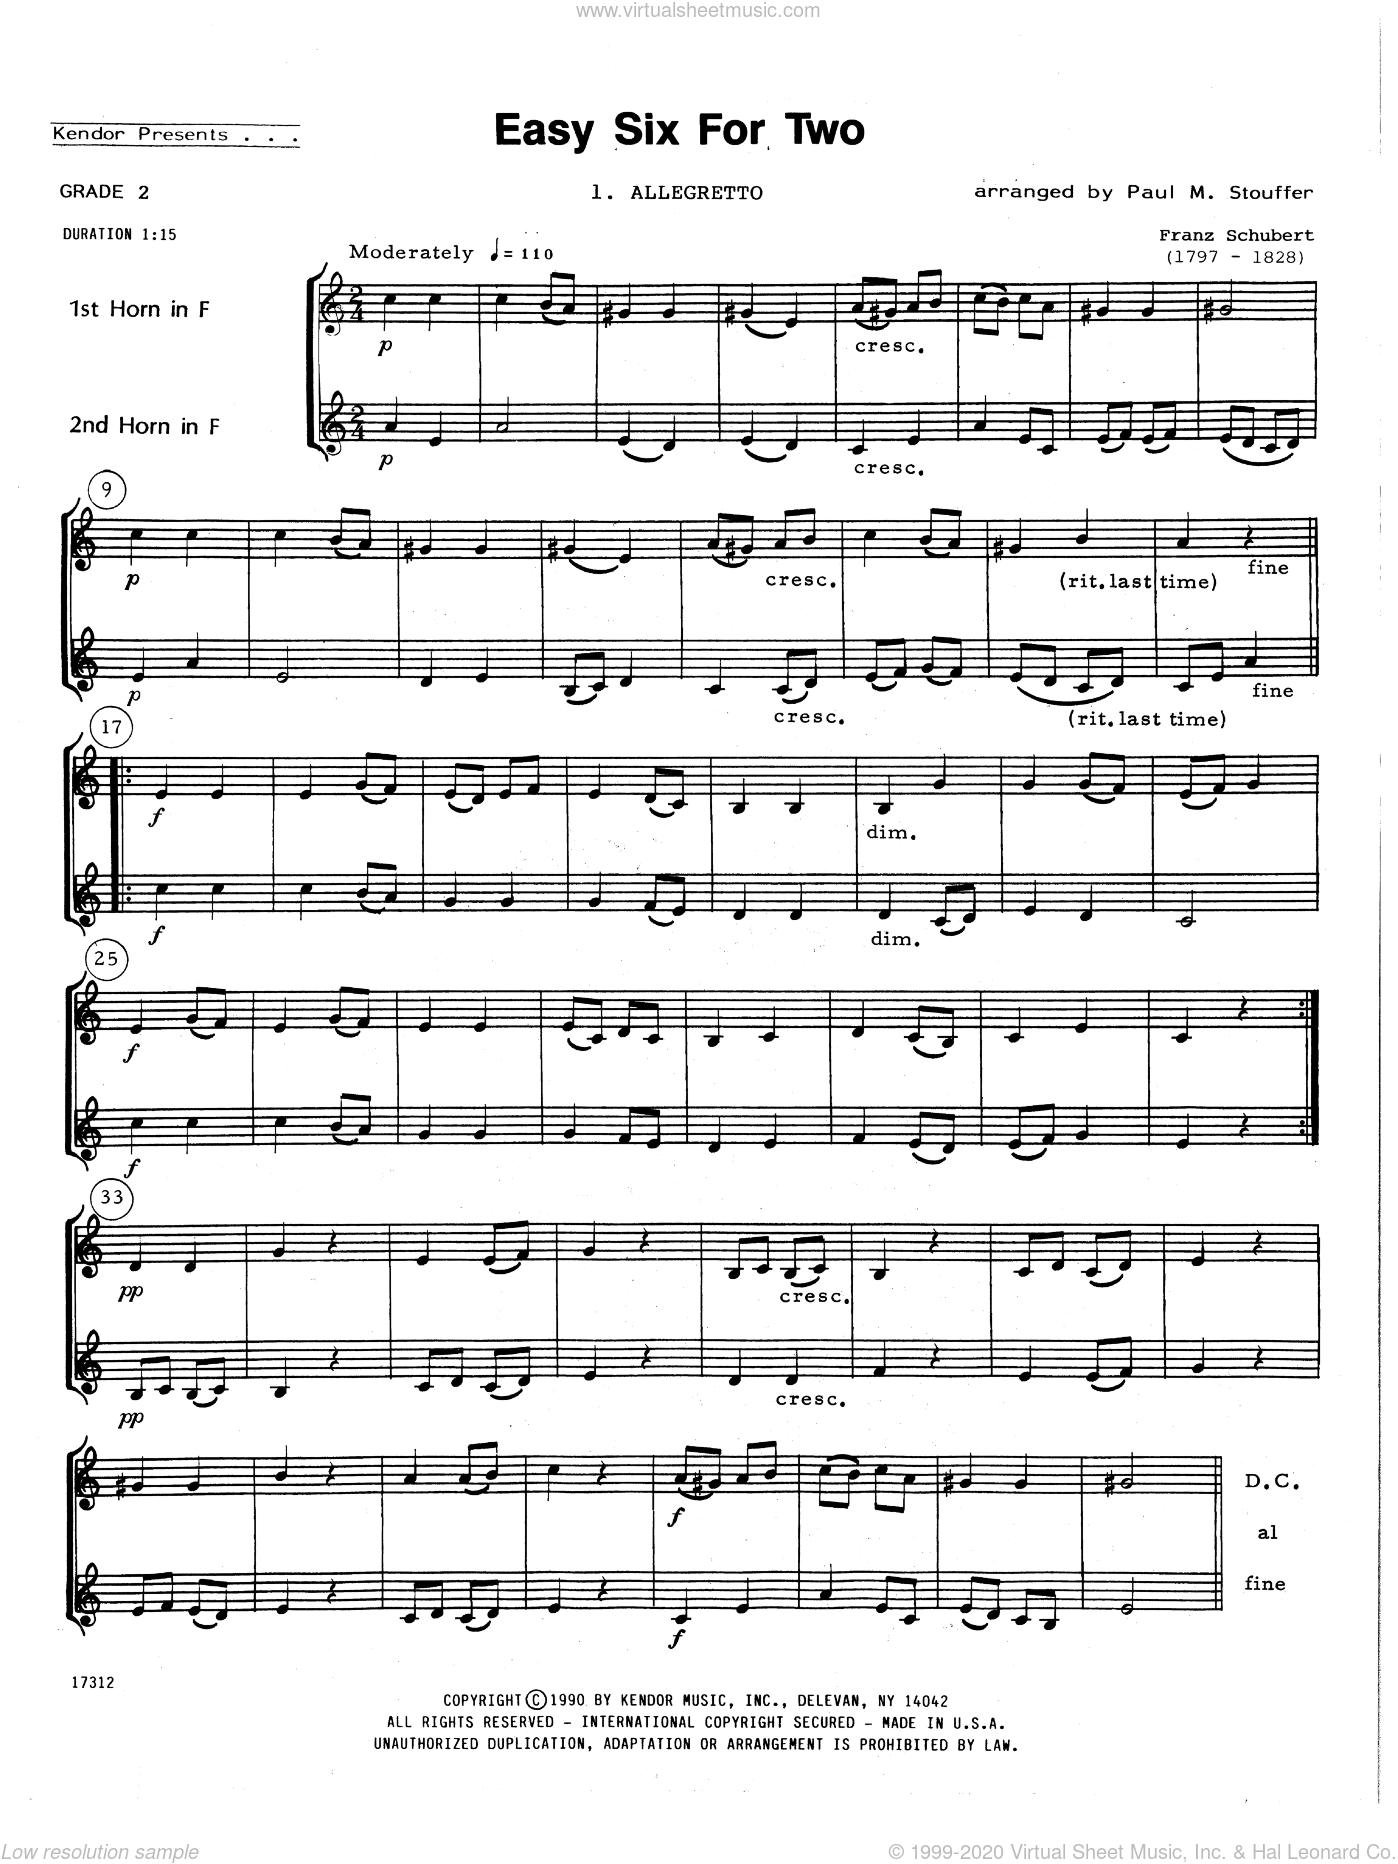 Easy Six For Two sheet music for two horns by Paul M. Stouffer, classical score, intermediate duet